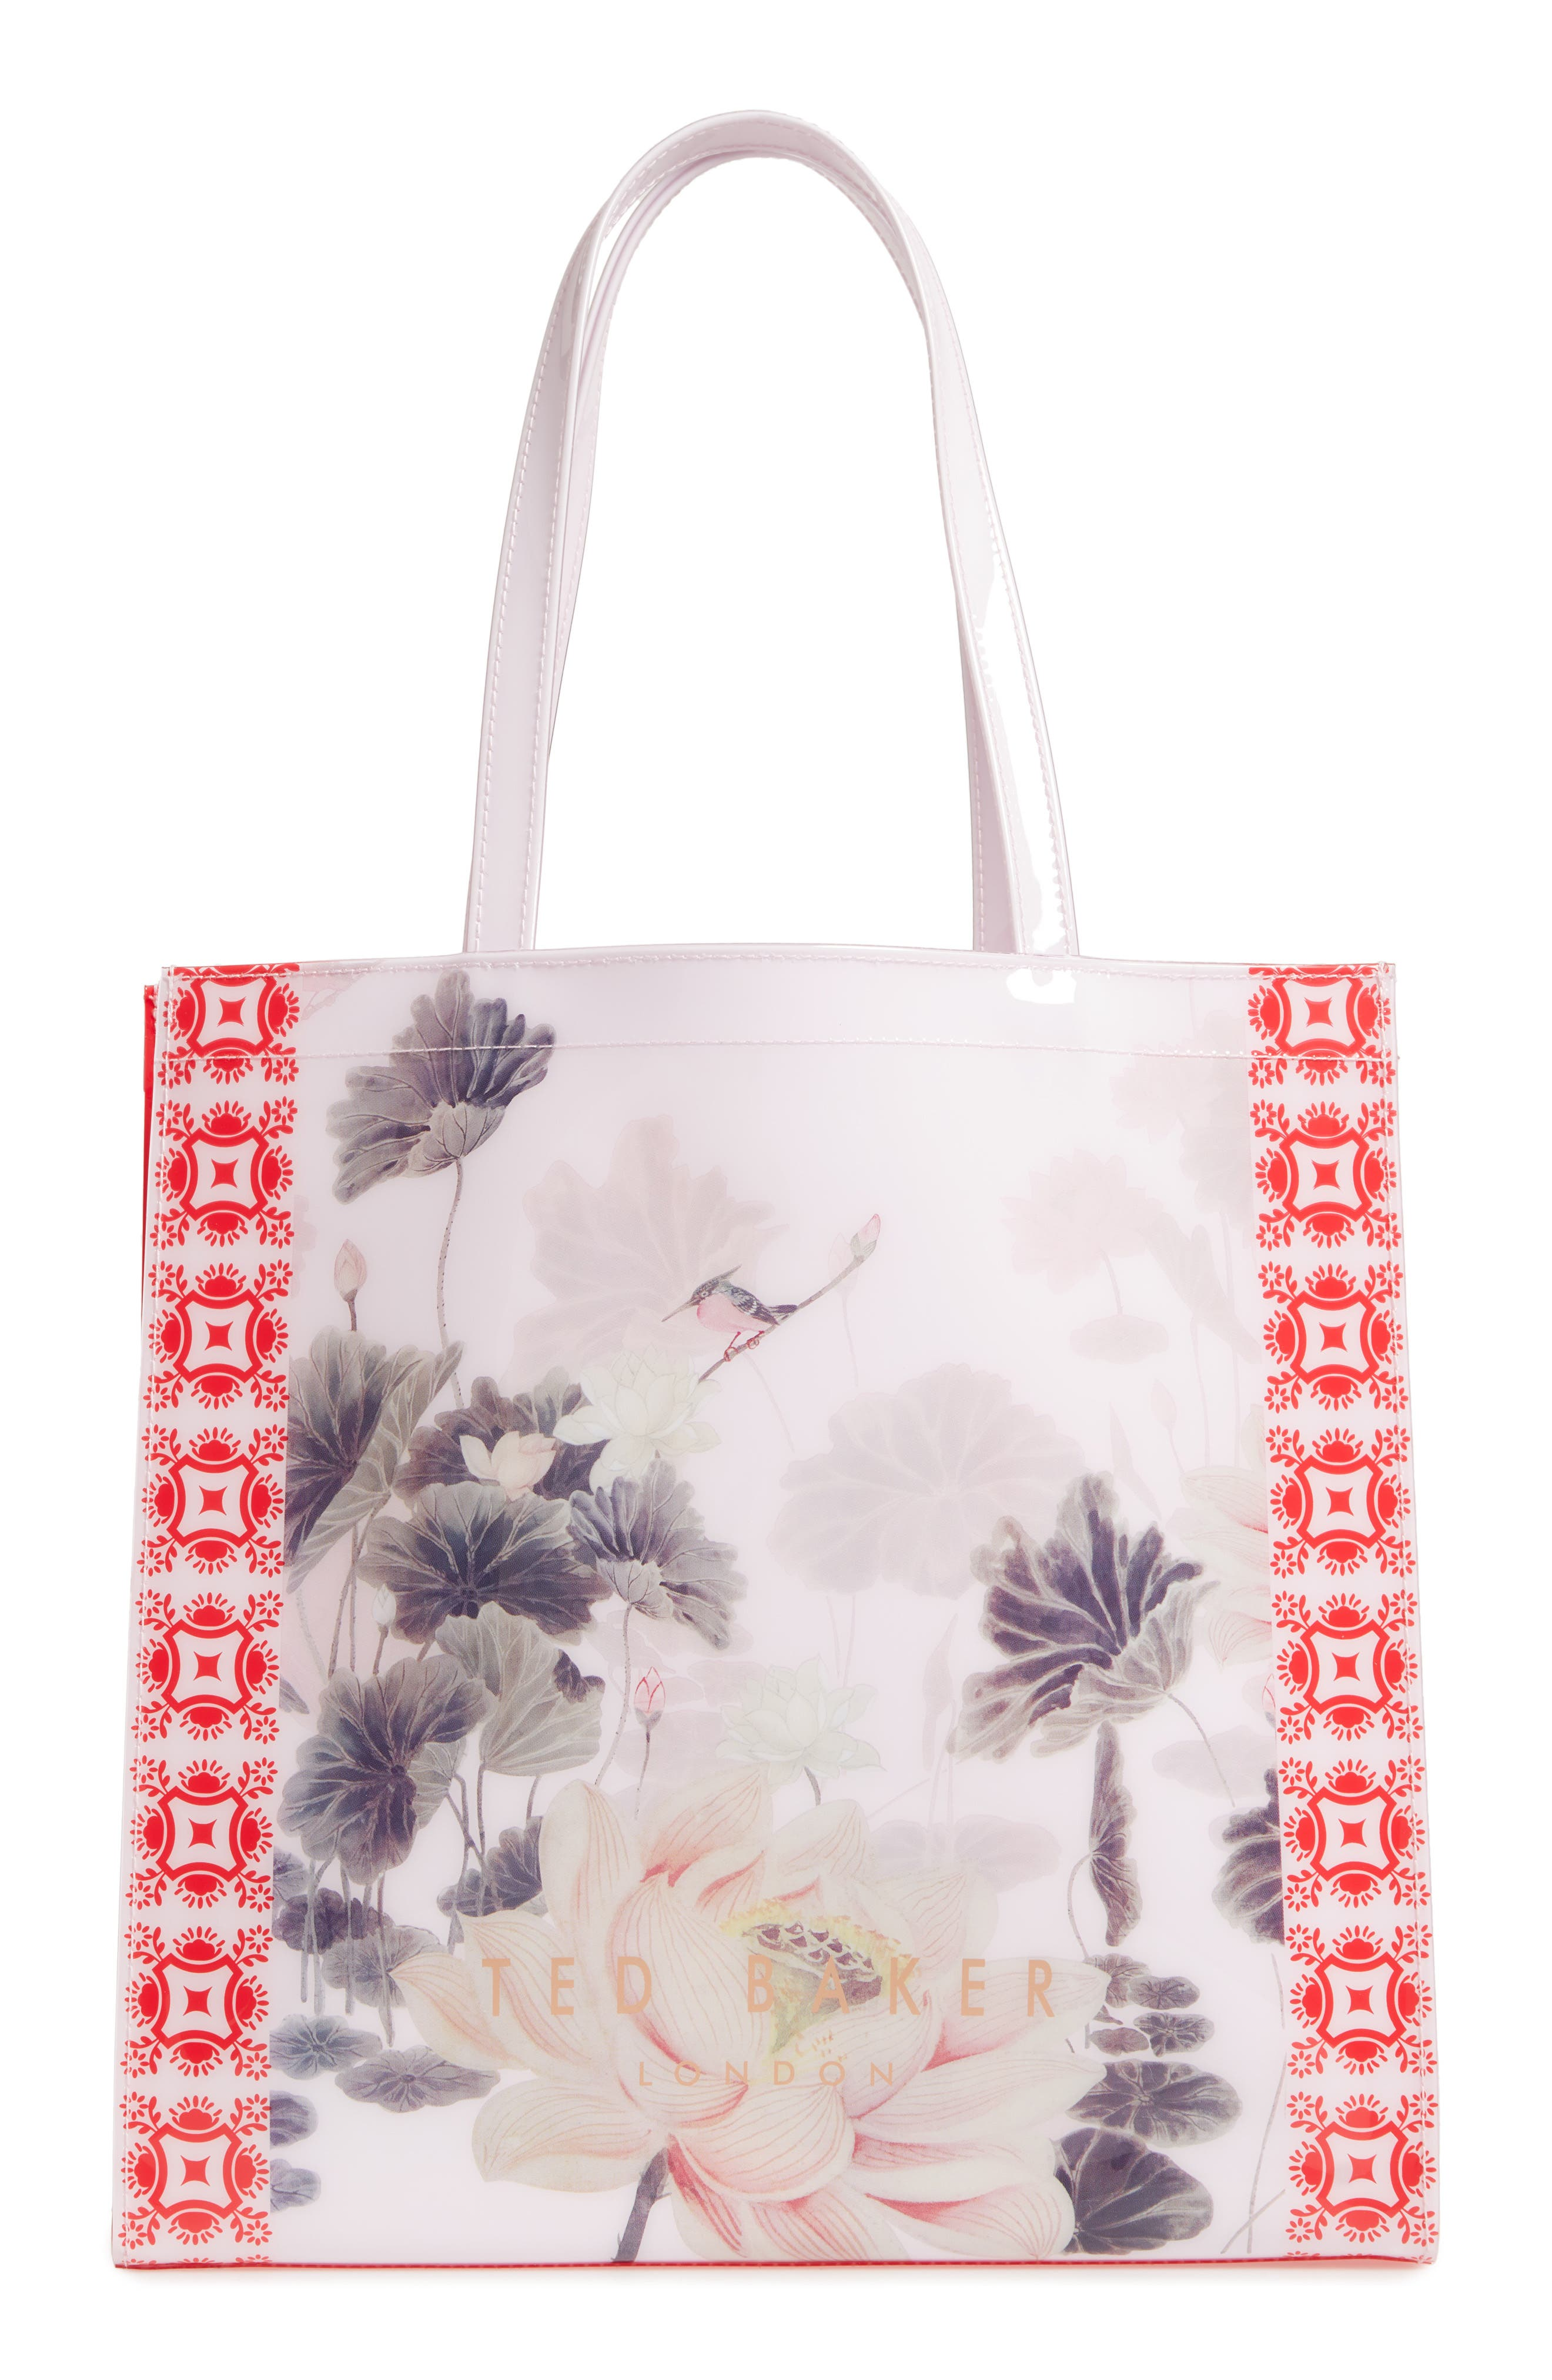 Lake of Dreams Large Icon Tote,                             Alternate thumbnail 3, color,                             DUSKY PINK